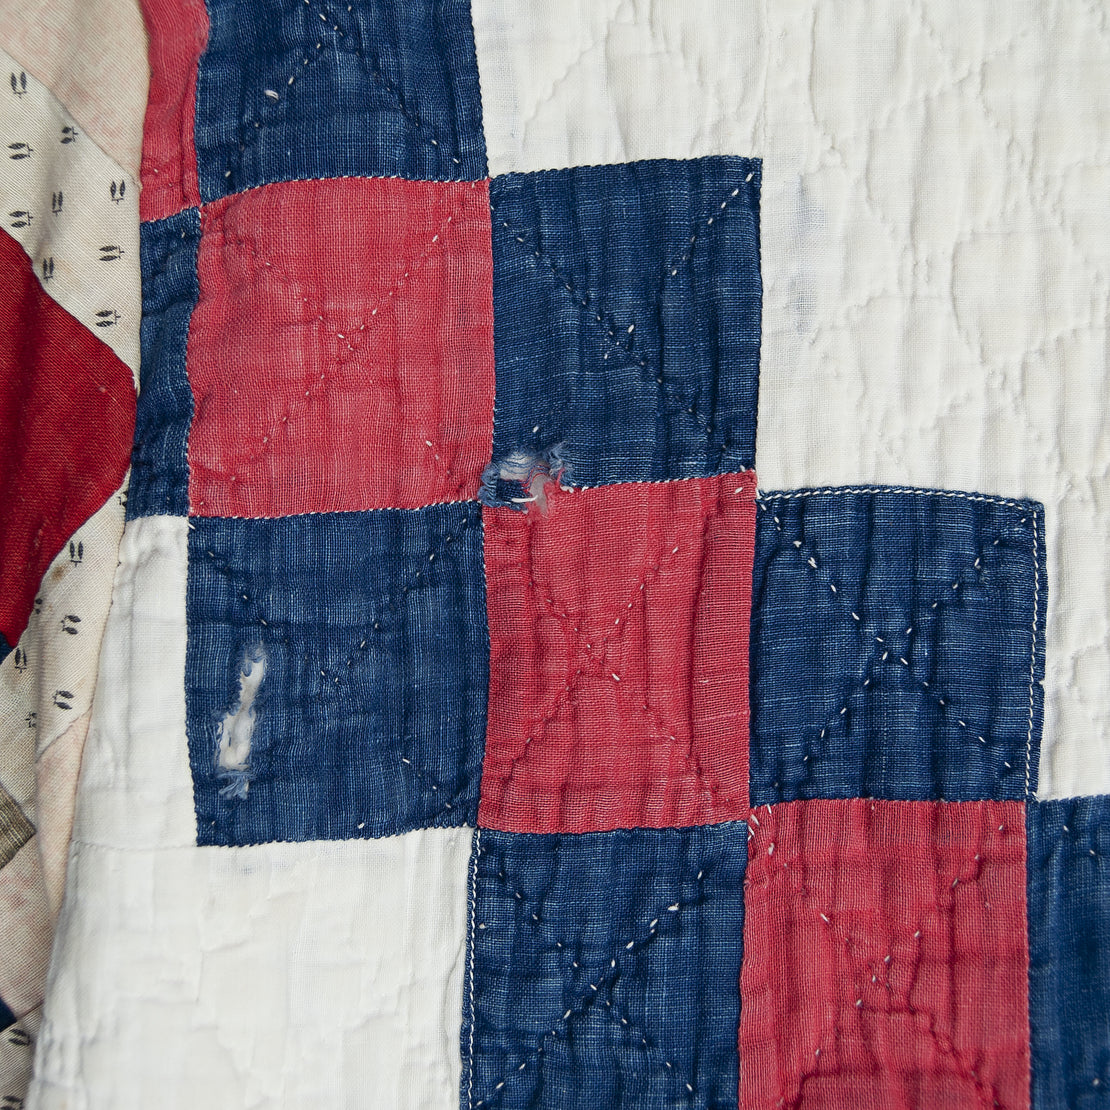 Scofield Log Cabin Sleeves Quilt Kimono - Red/White/Blue